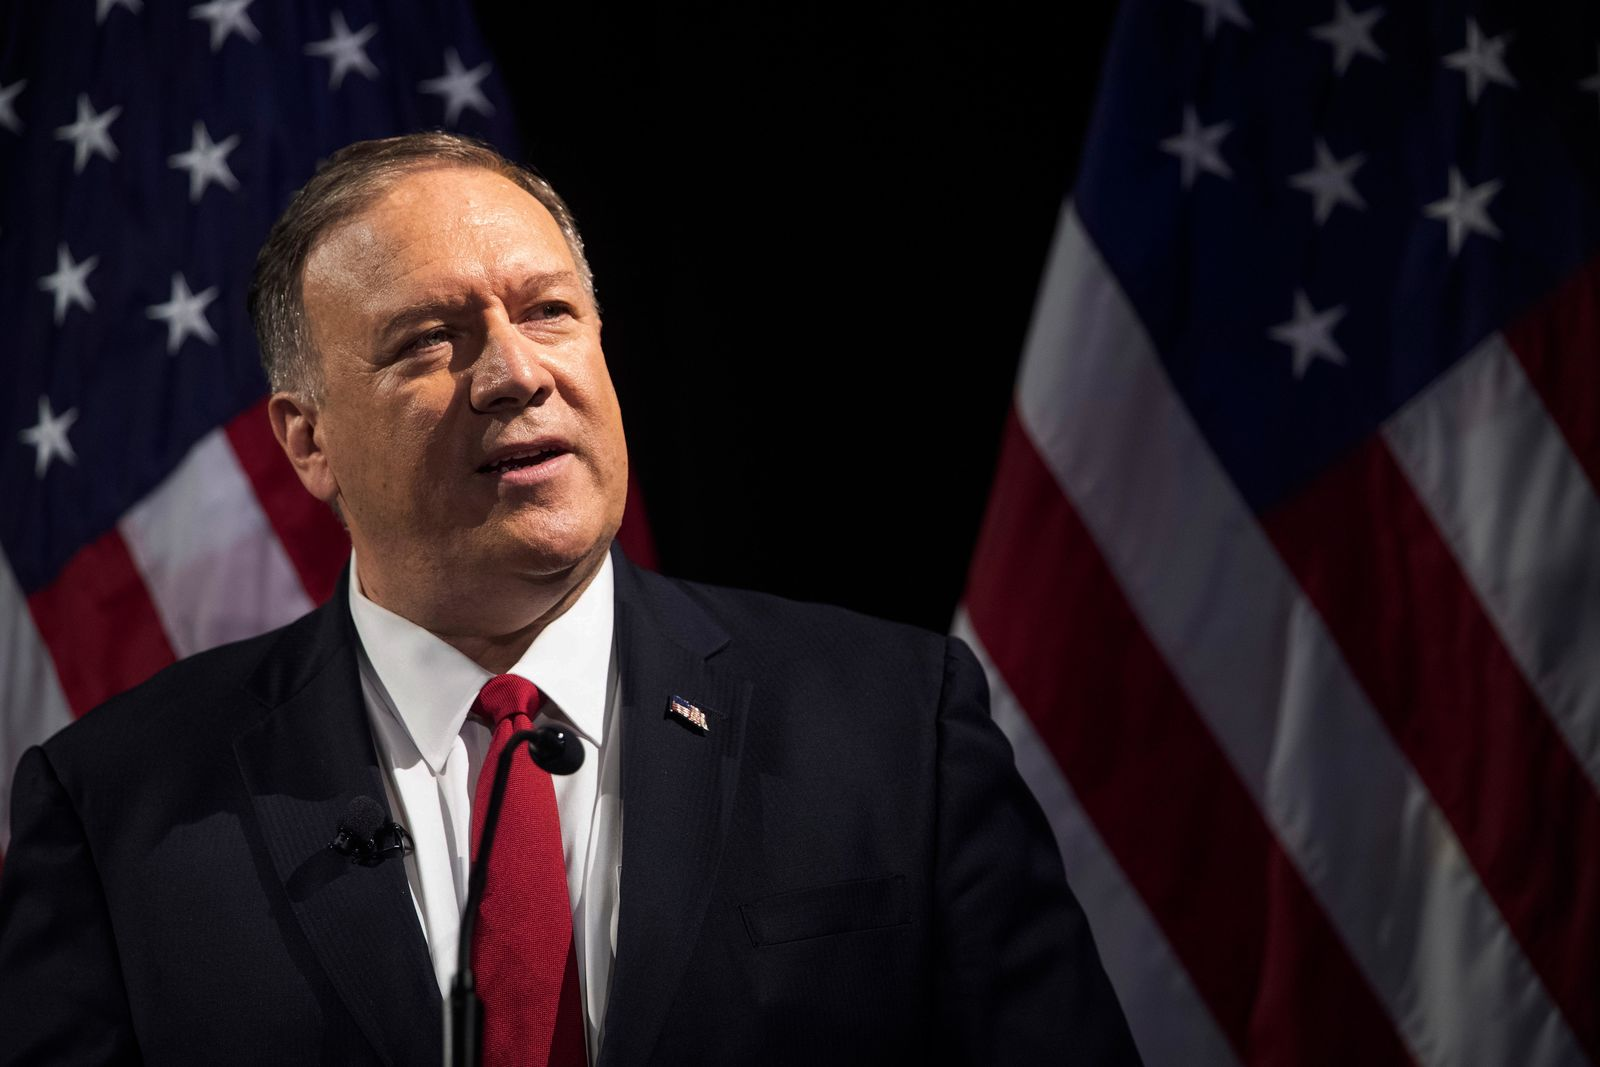 Secretary of State Mike Pompeo speaks during the Herman Kahn Award Gala, Wednesday, Oct. 30, 2019, in New York. Pompeo received the Hudson Institute's 2019 Herman Kahn Award. (AP Photo/Mary Altaffer)